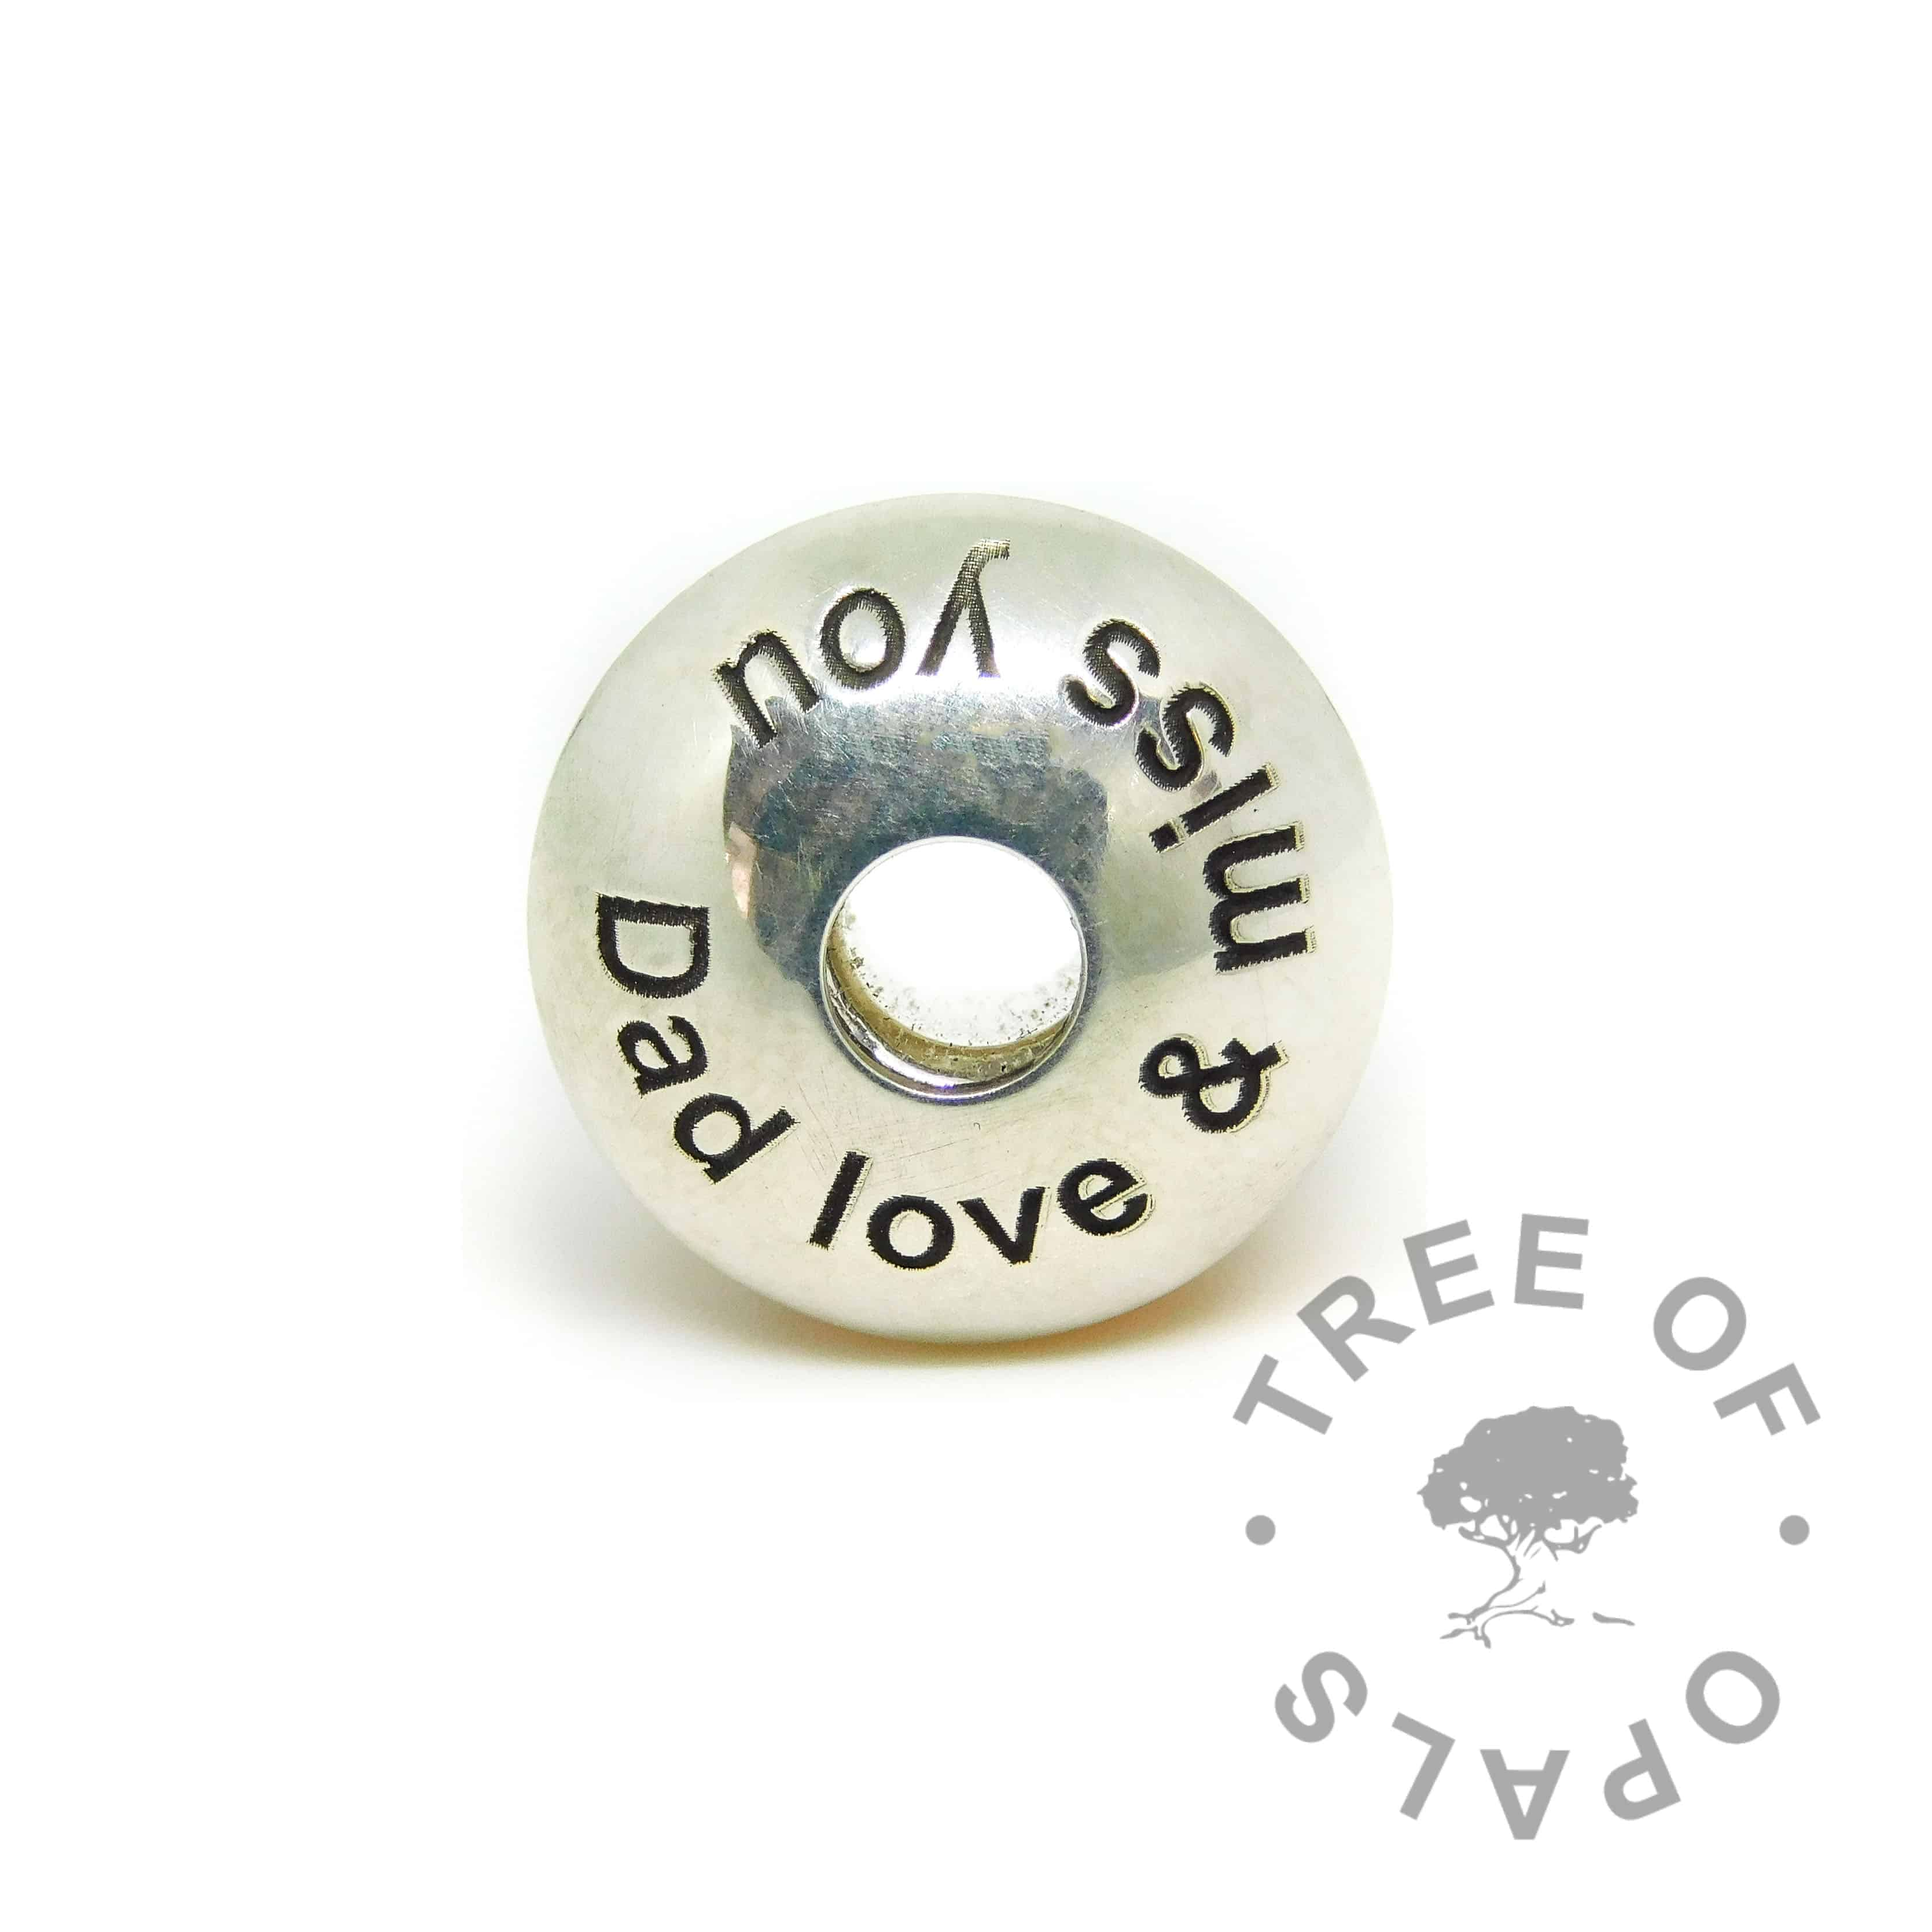 charm washer Arial font with Dad love & miss you